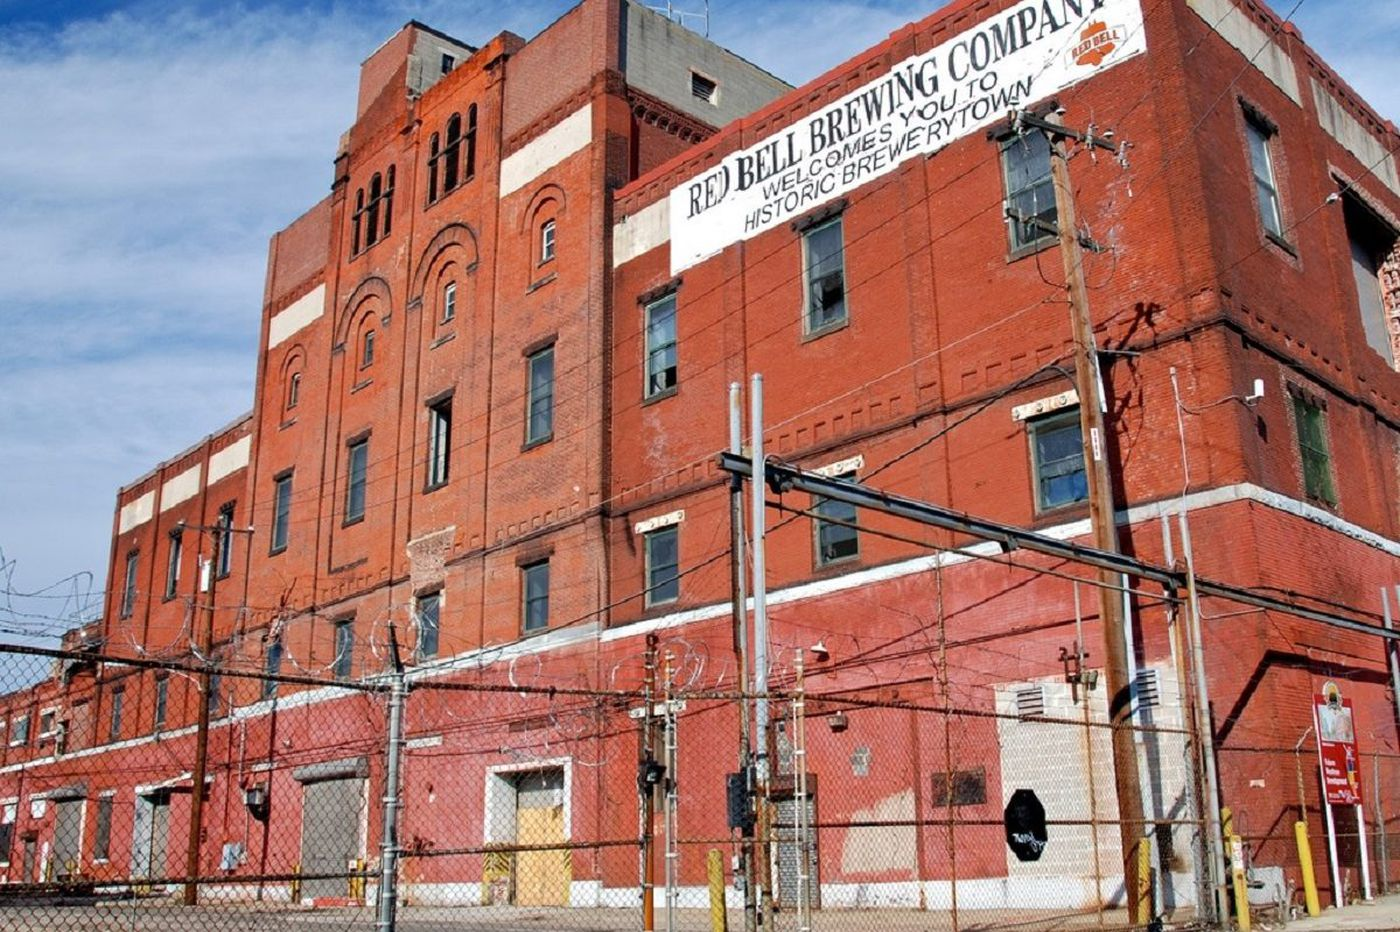 Vacant Red Bell Brewing building sold for $4.12M; apartments planned